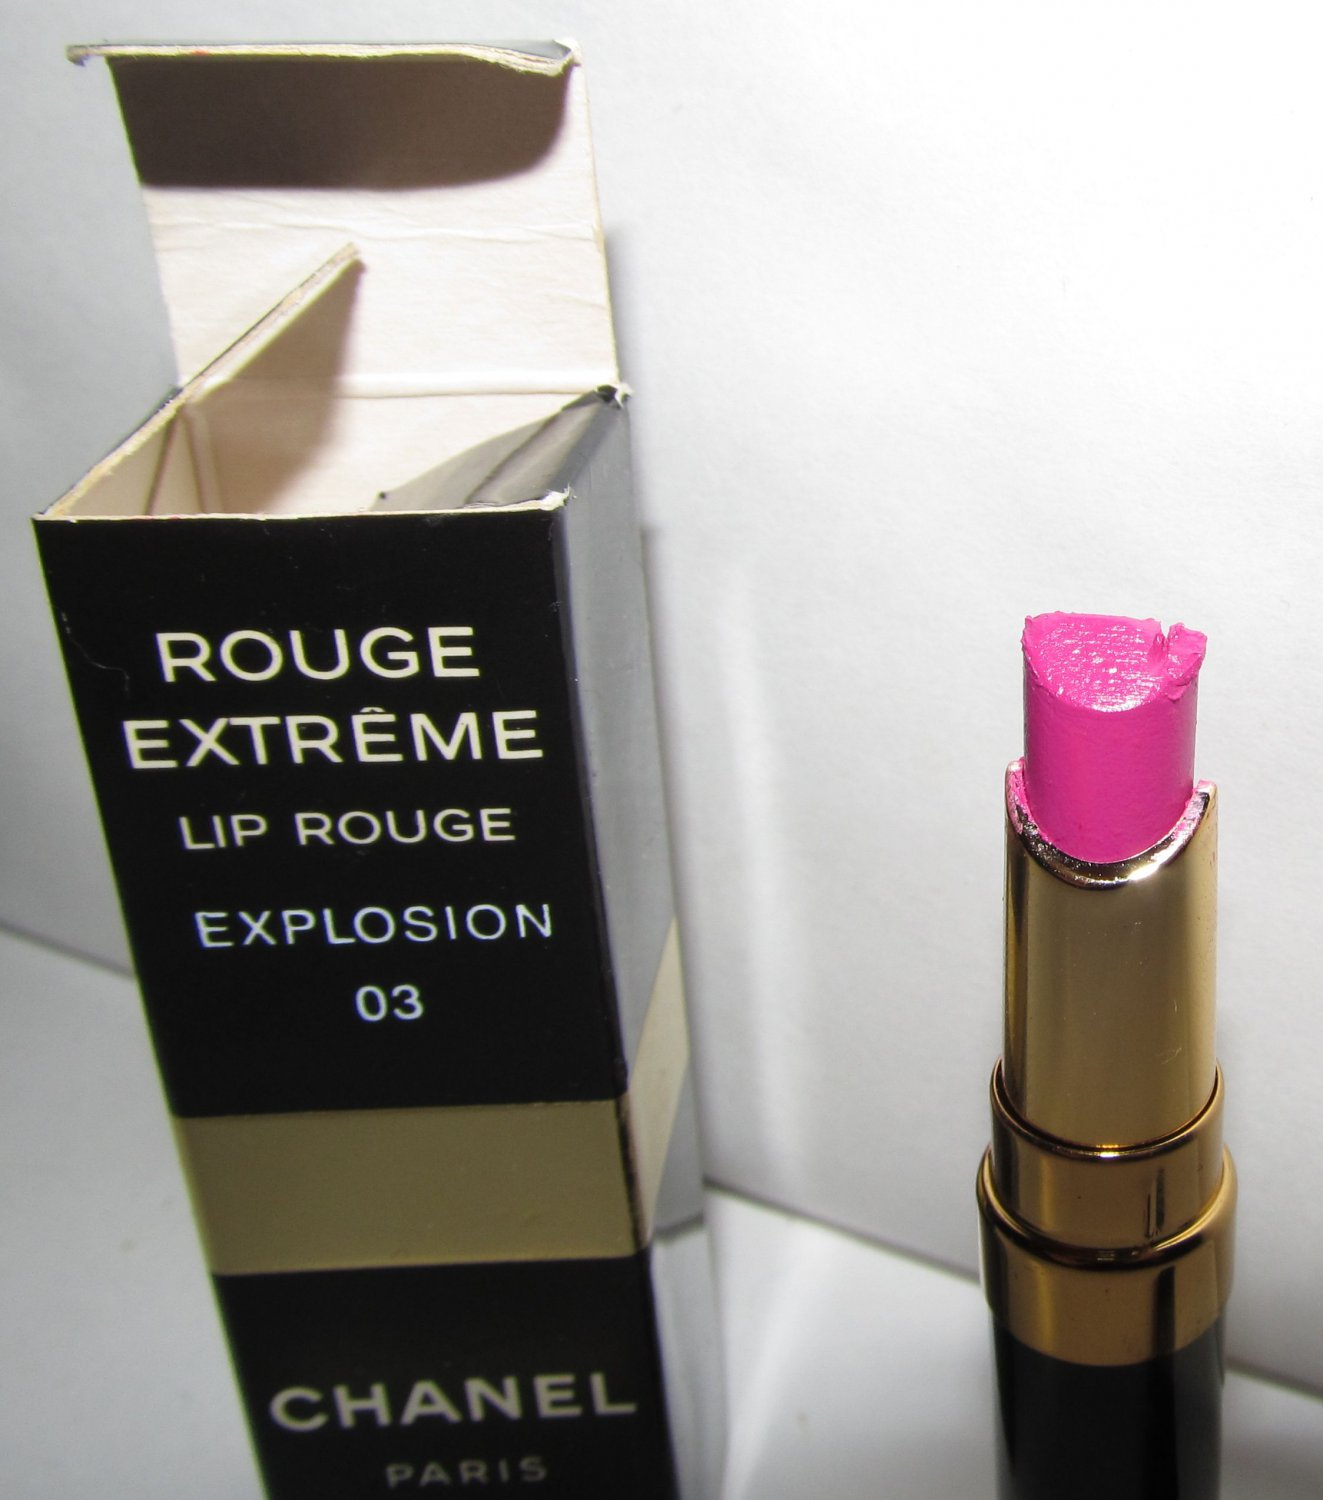 CHANEL Lipstick - Rouge Extreme - Explosion 03 - RARE